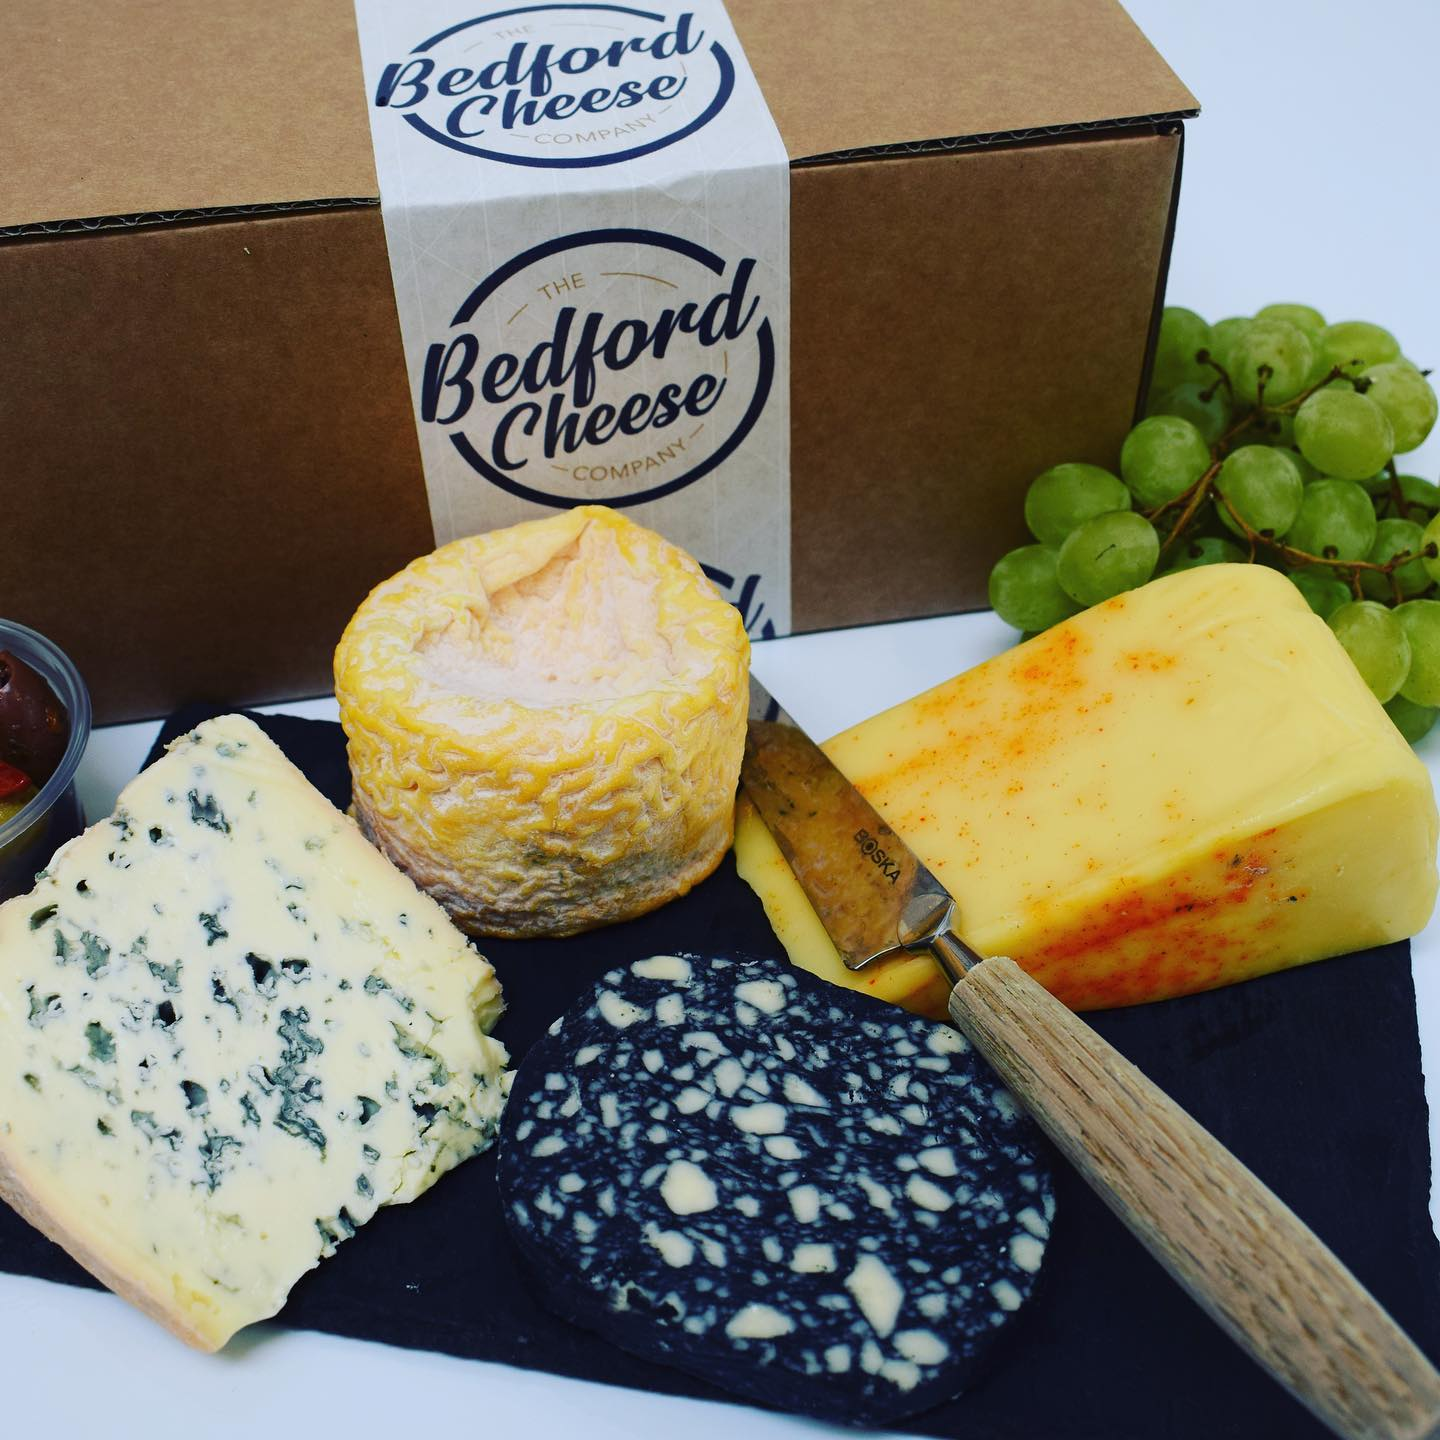 BEDFORD CHEESE COMPANY